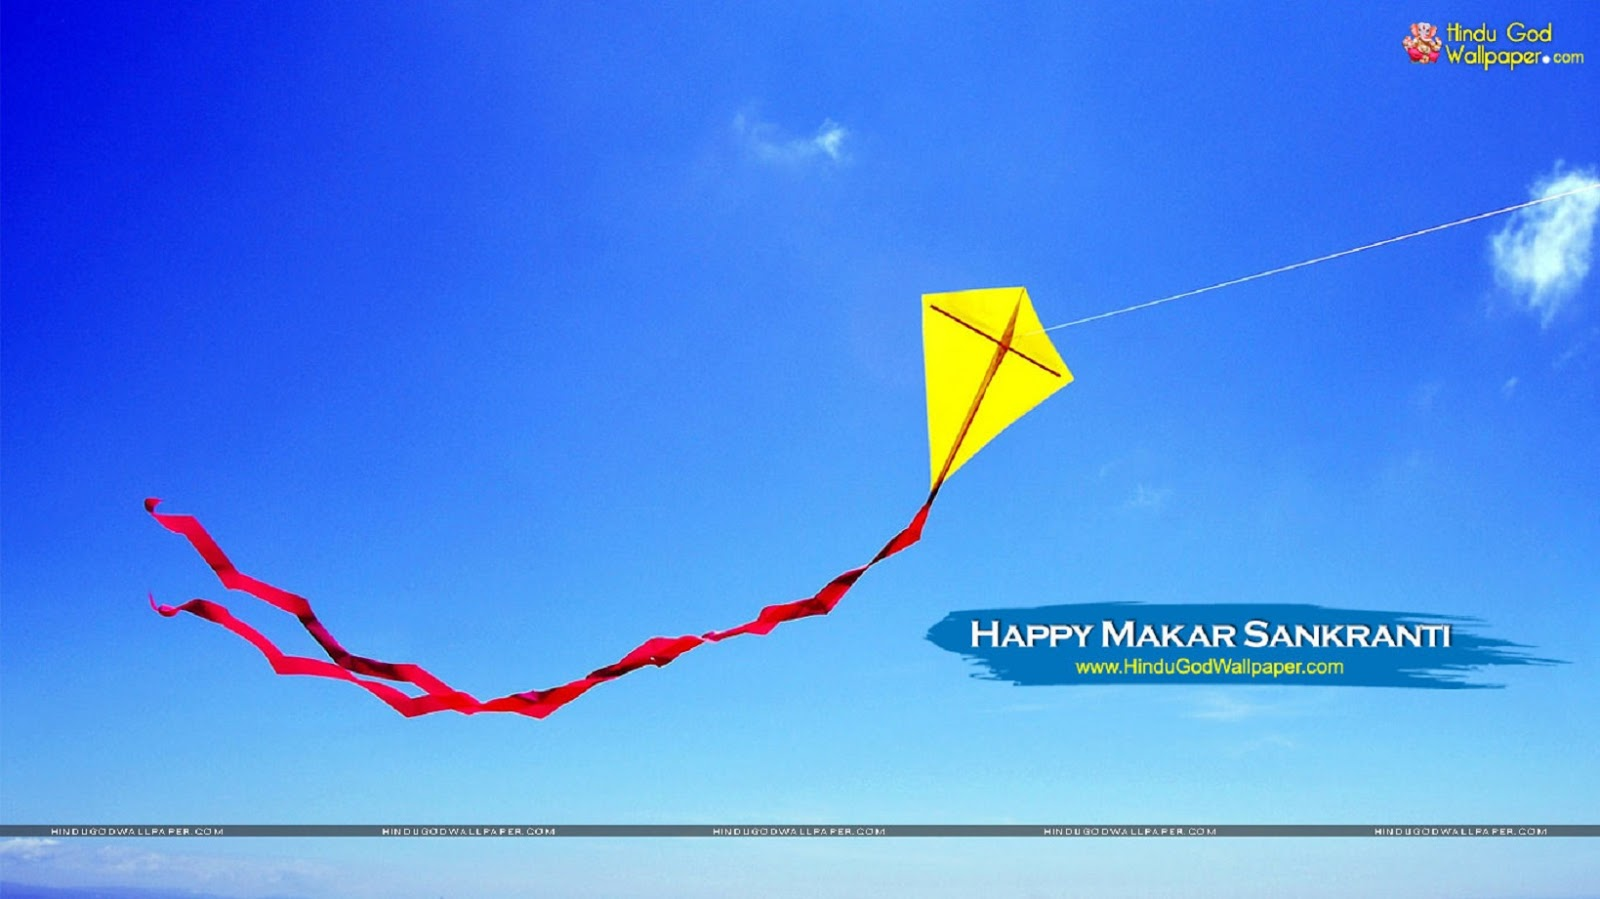 Happy-Sankranti-Images-2018: